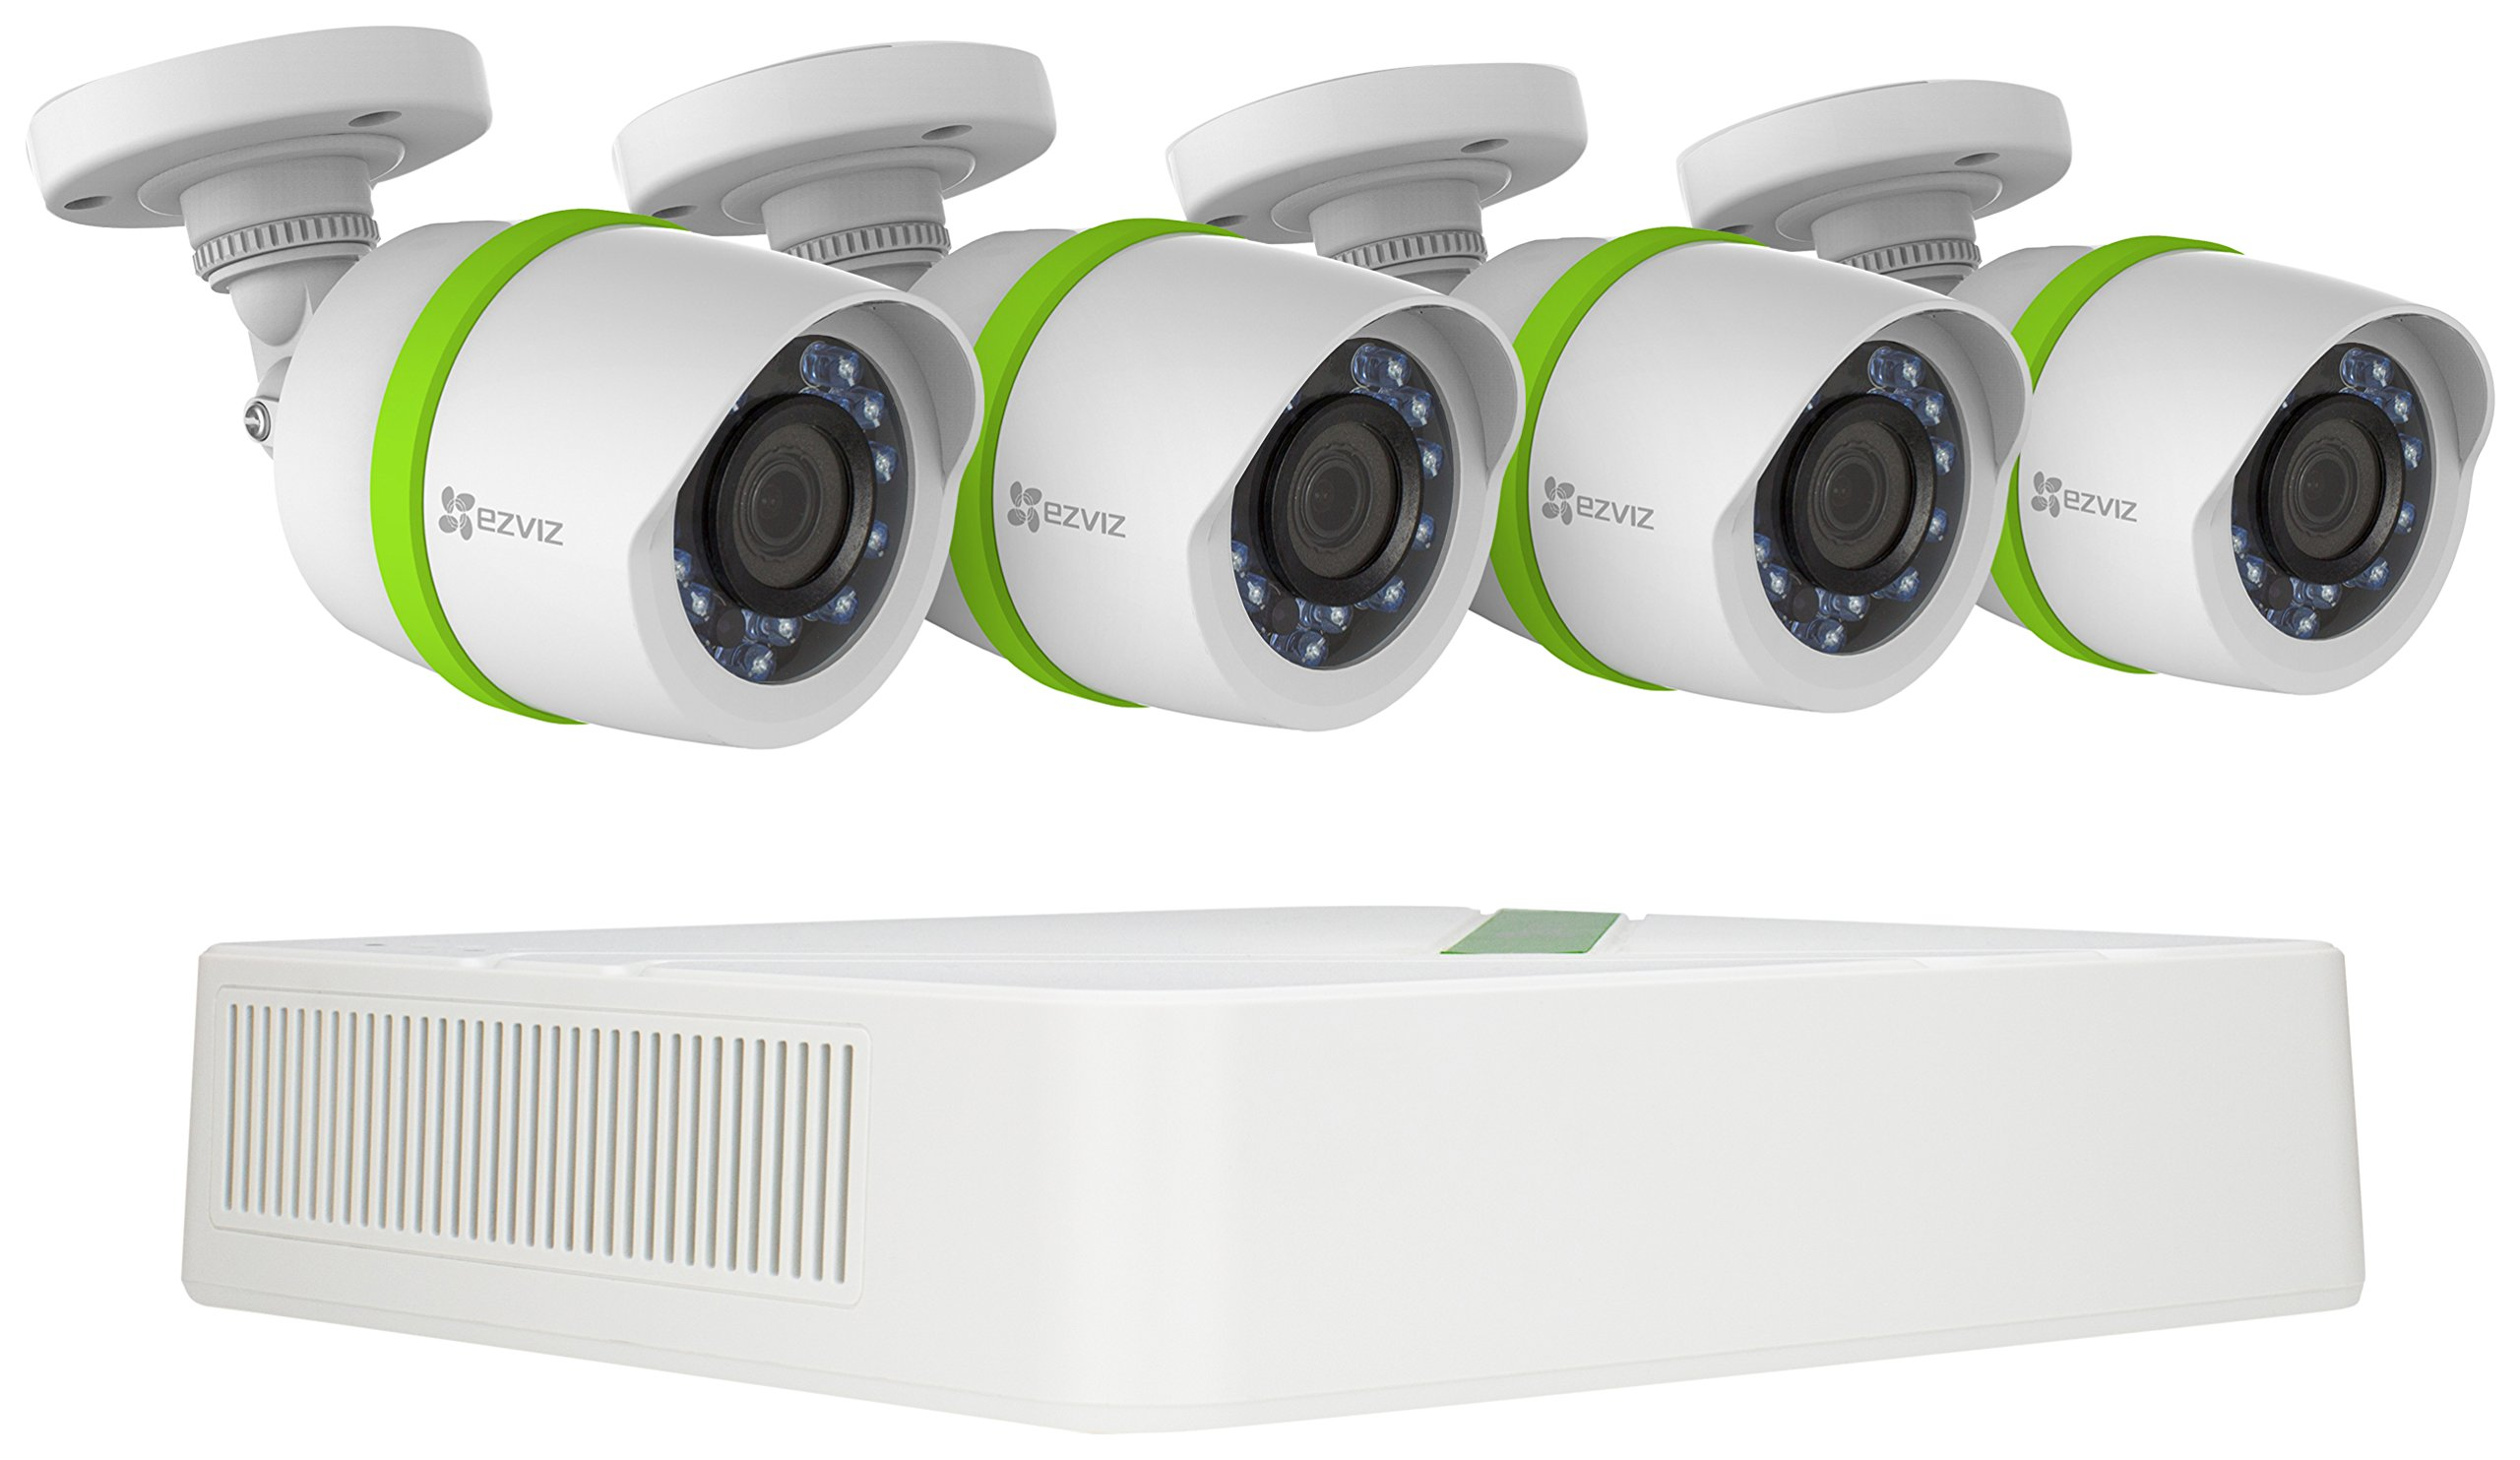 EZVIZ TRIPLE HD 3MP Outdoor Surveillance System, 4 Weatherproof HD Security Cameras, 4 Channel 1TB DVR Storage, 100ft Night Vision, Customizable Motion Detection